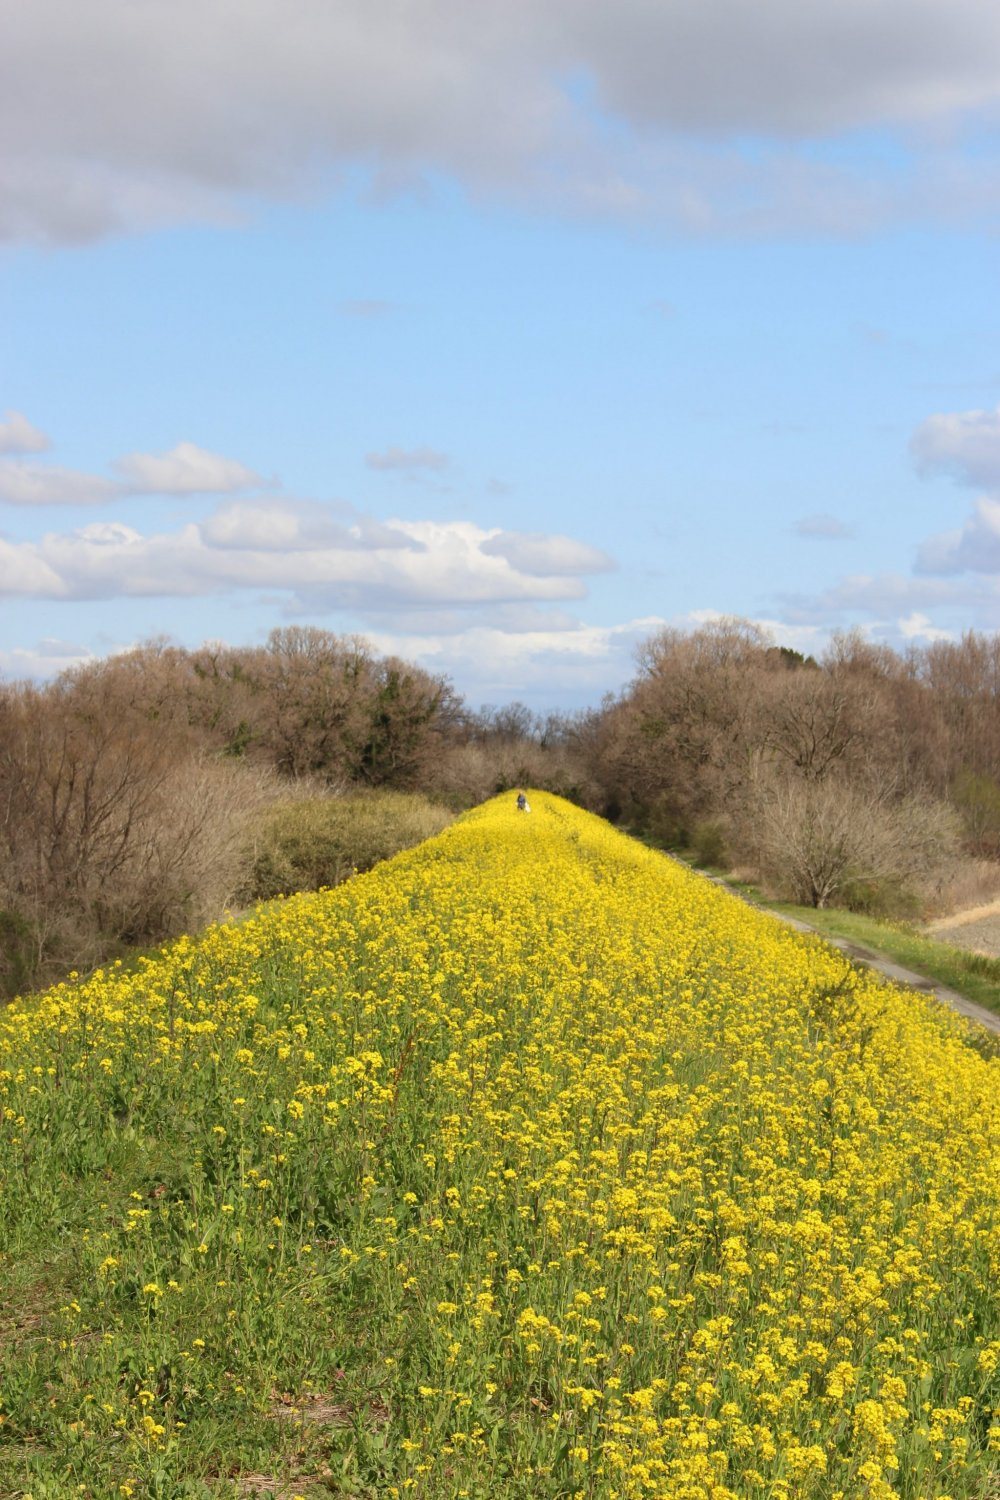 An embankment of rapeseed off the main path